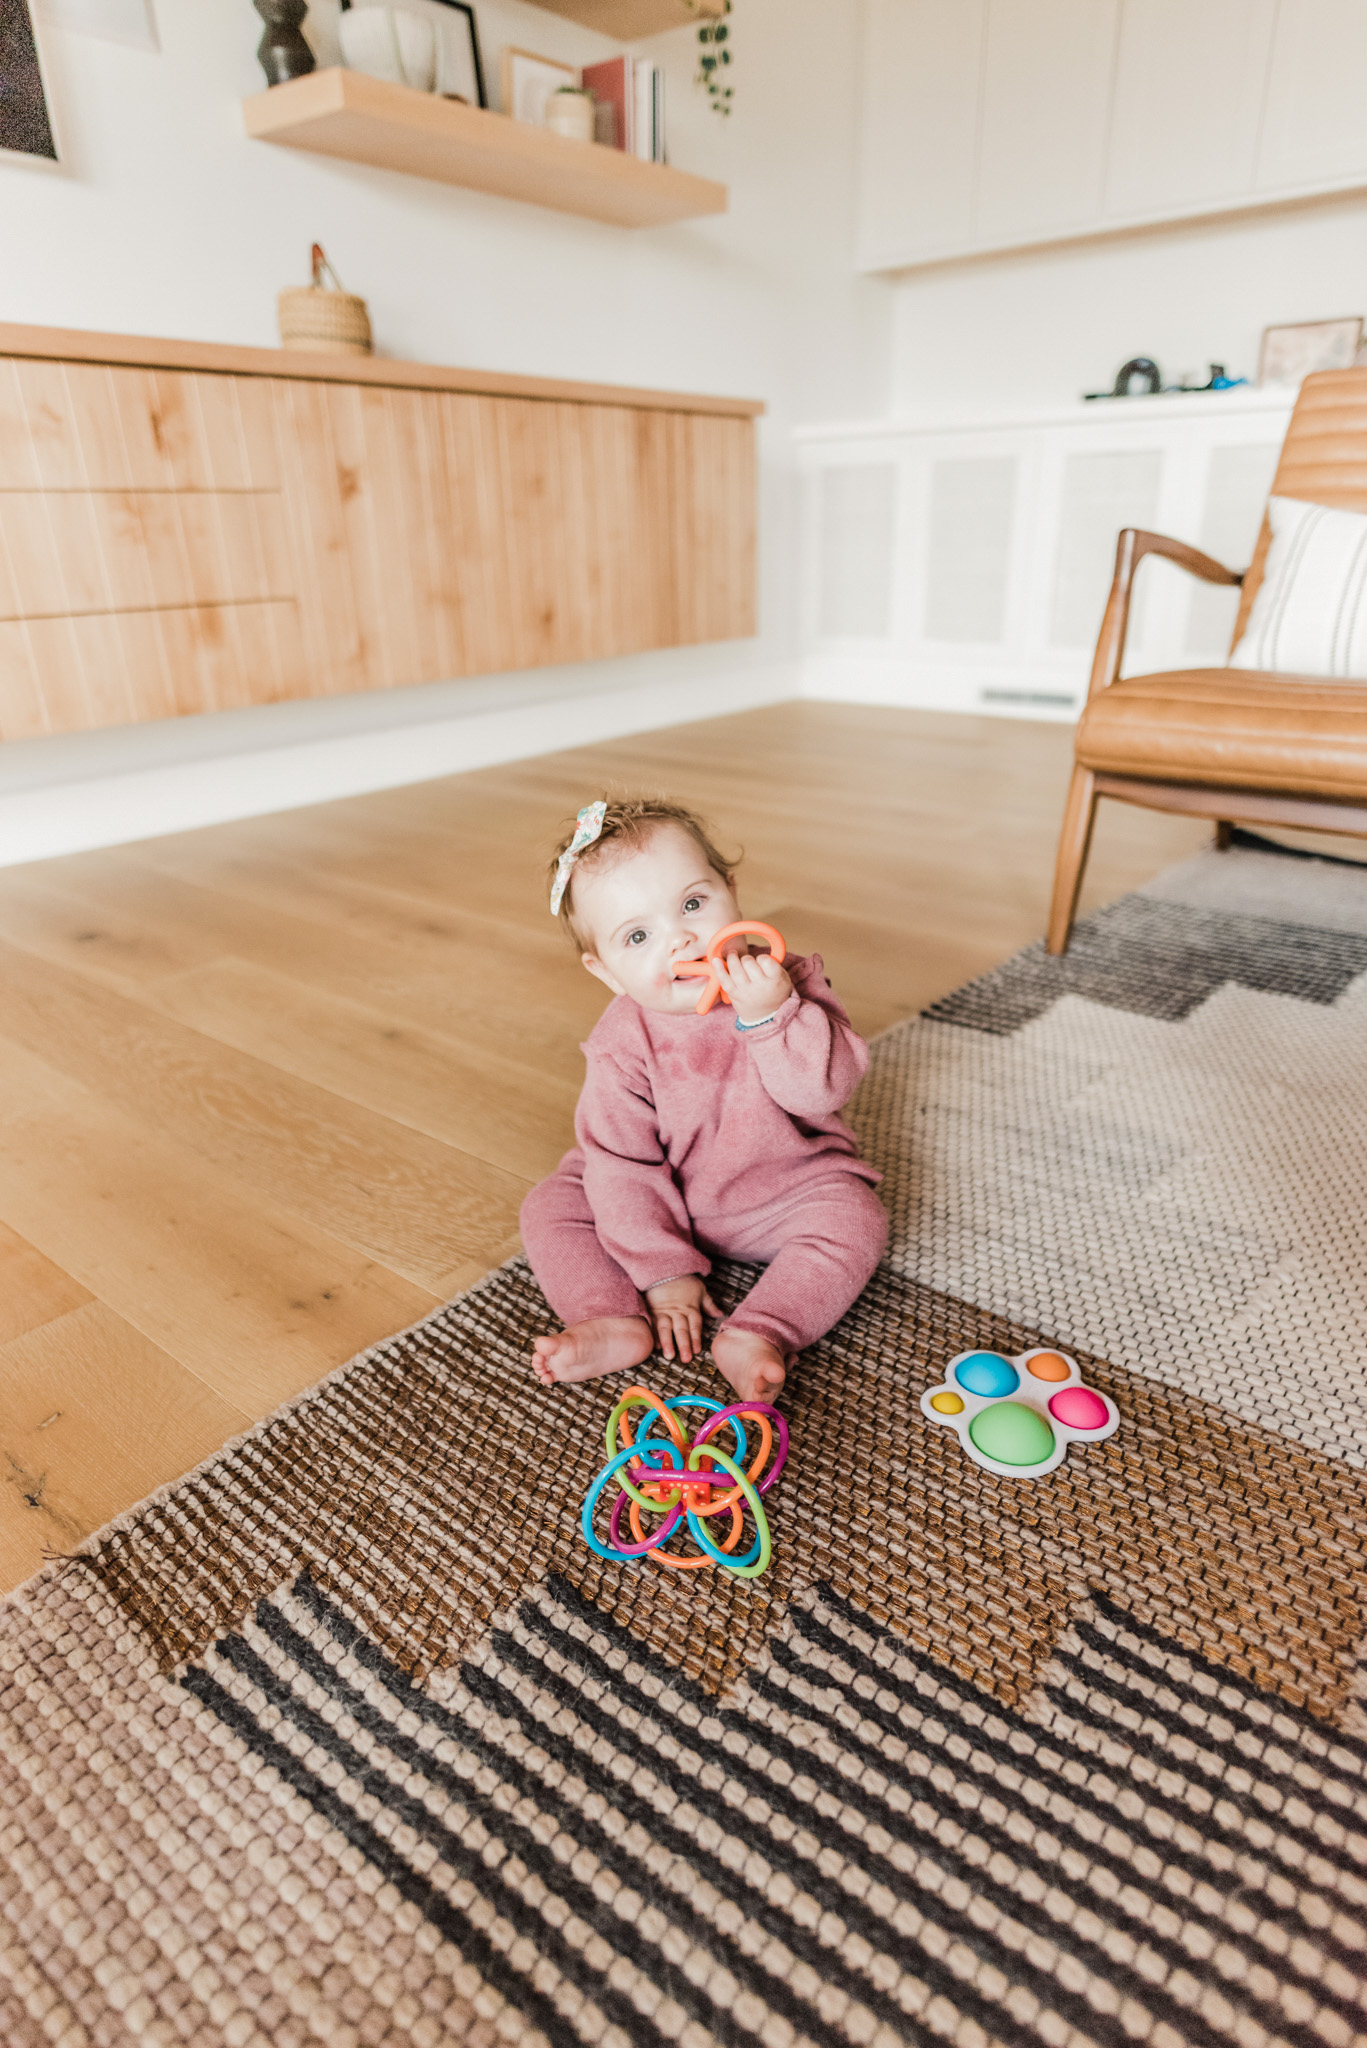 Easter Basket Gift Ideas by popular San Diego lifestyle blog, Navy Grace: image of a baby girl sitting on the floor and playing with some baby toys.